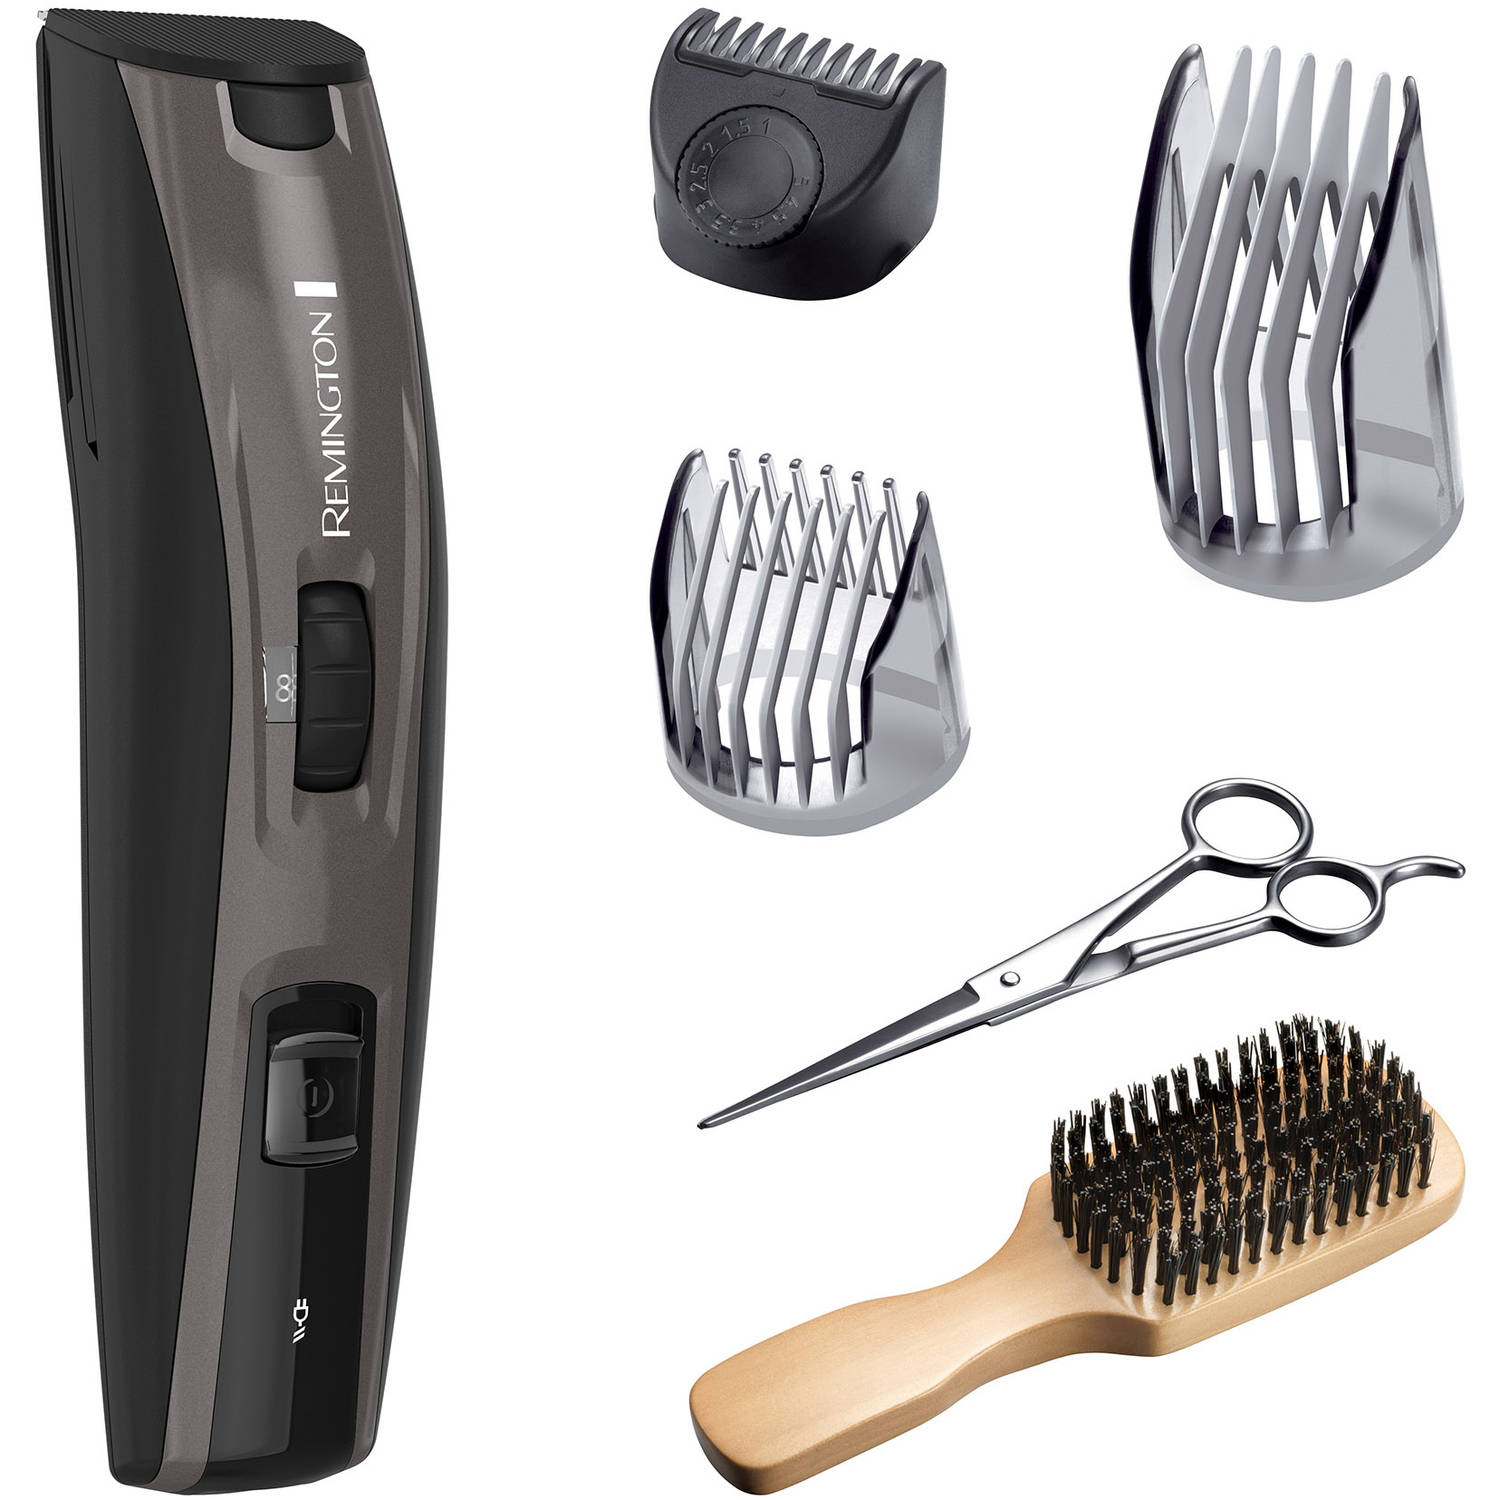 Remington Beard Boss Full Beard Grooming Kit, 6 pc